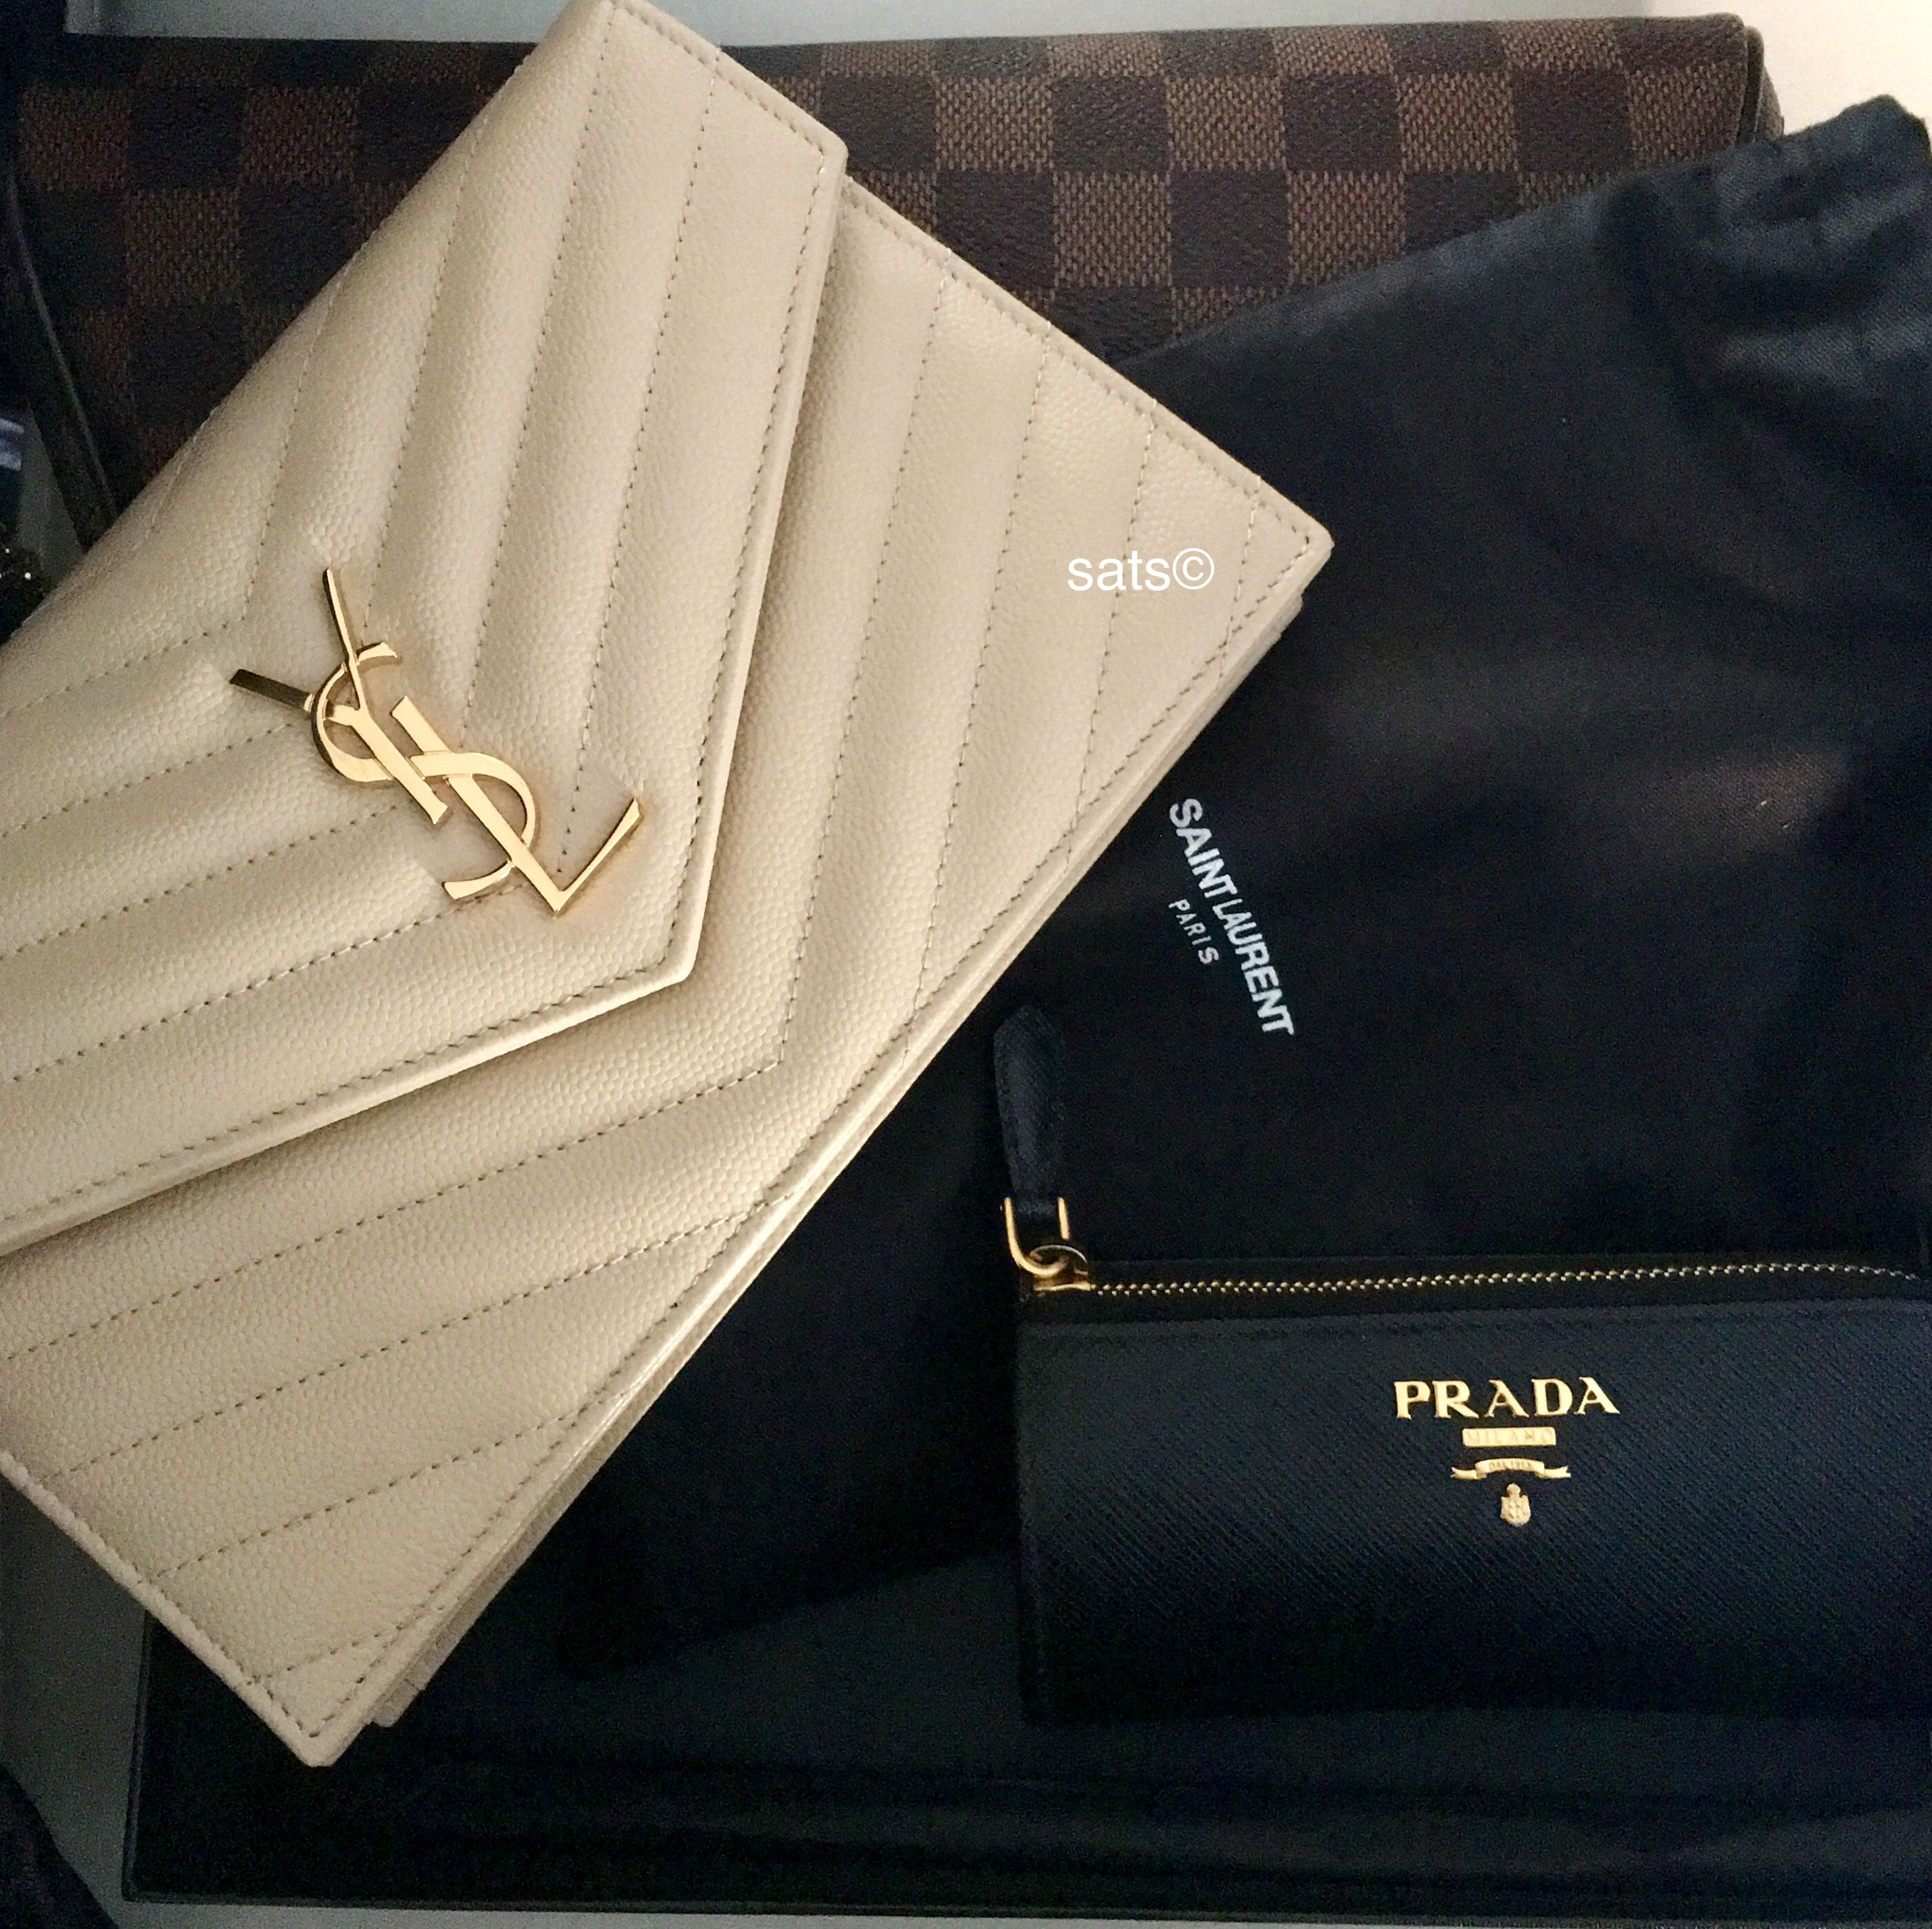 0a6e32c6b8c1 YSL Saint Laurent Nude Powder wallet on chain WOC bag and Prada key holder  pouch